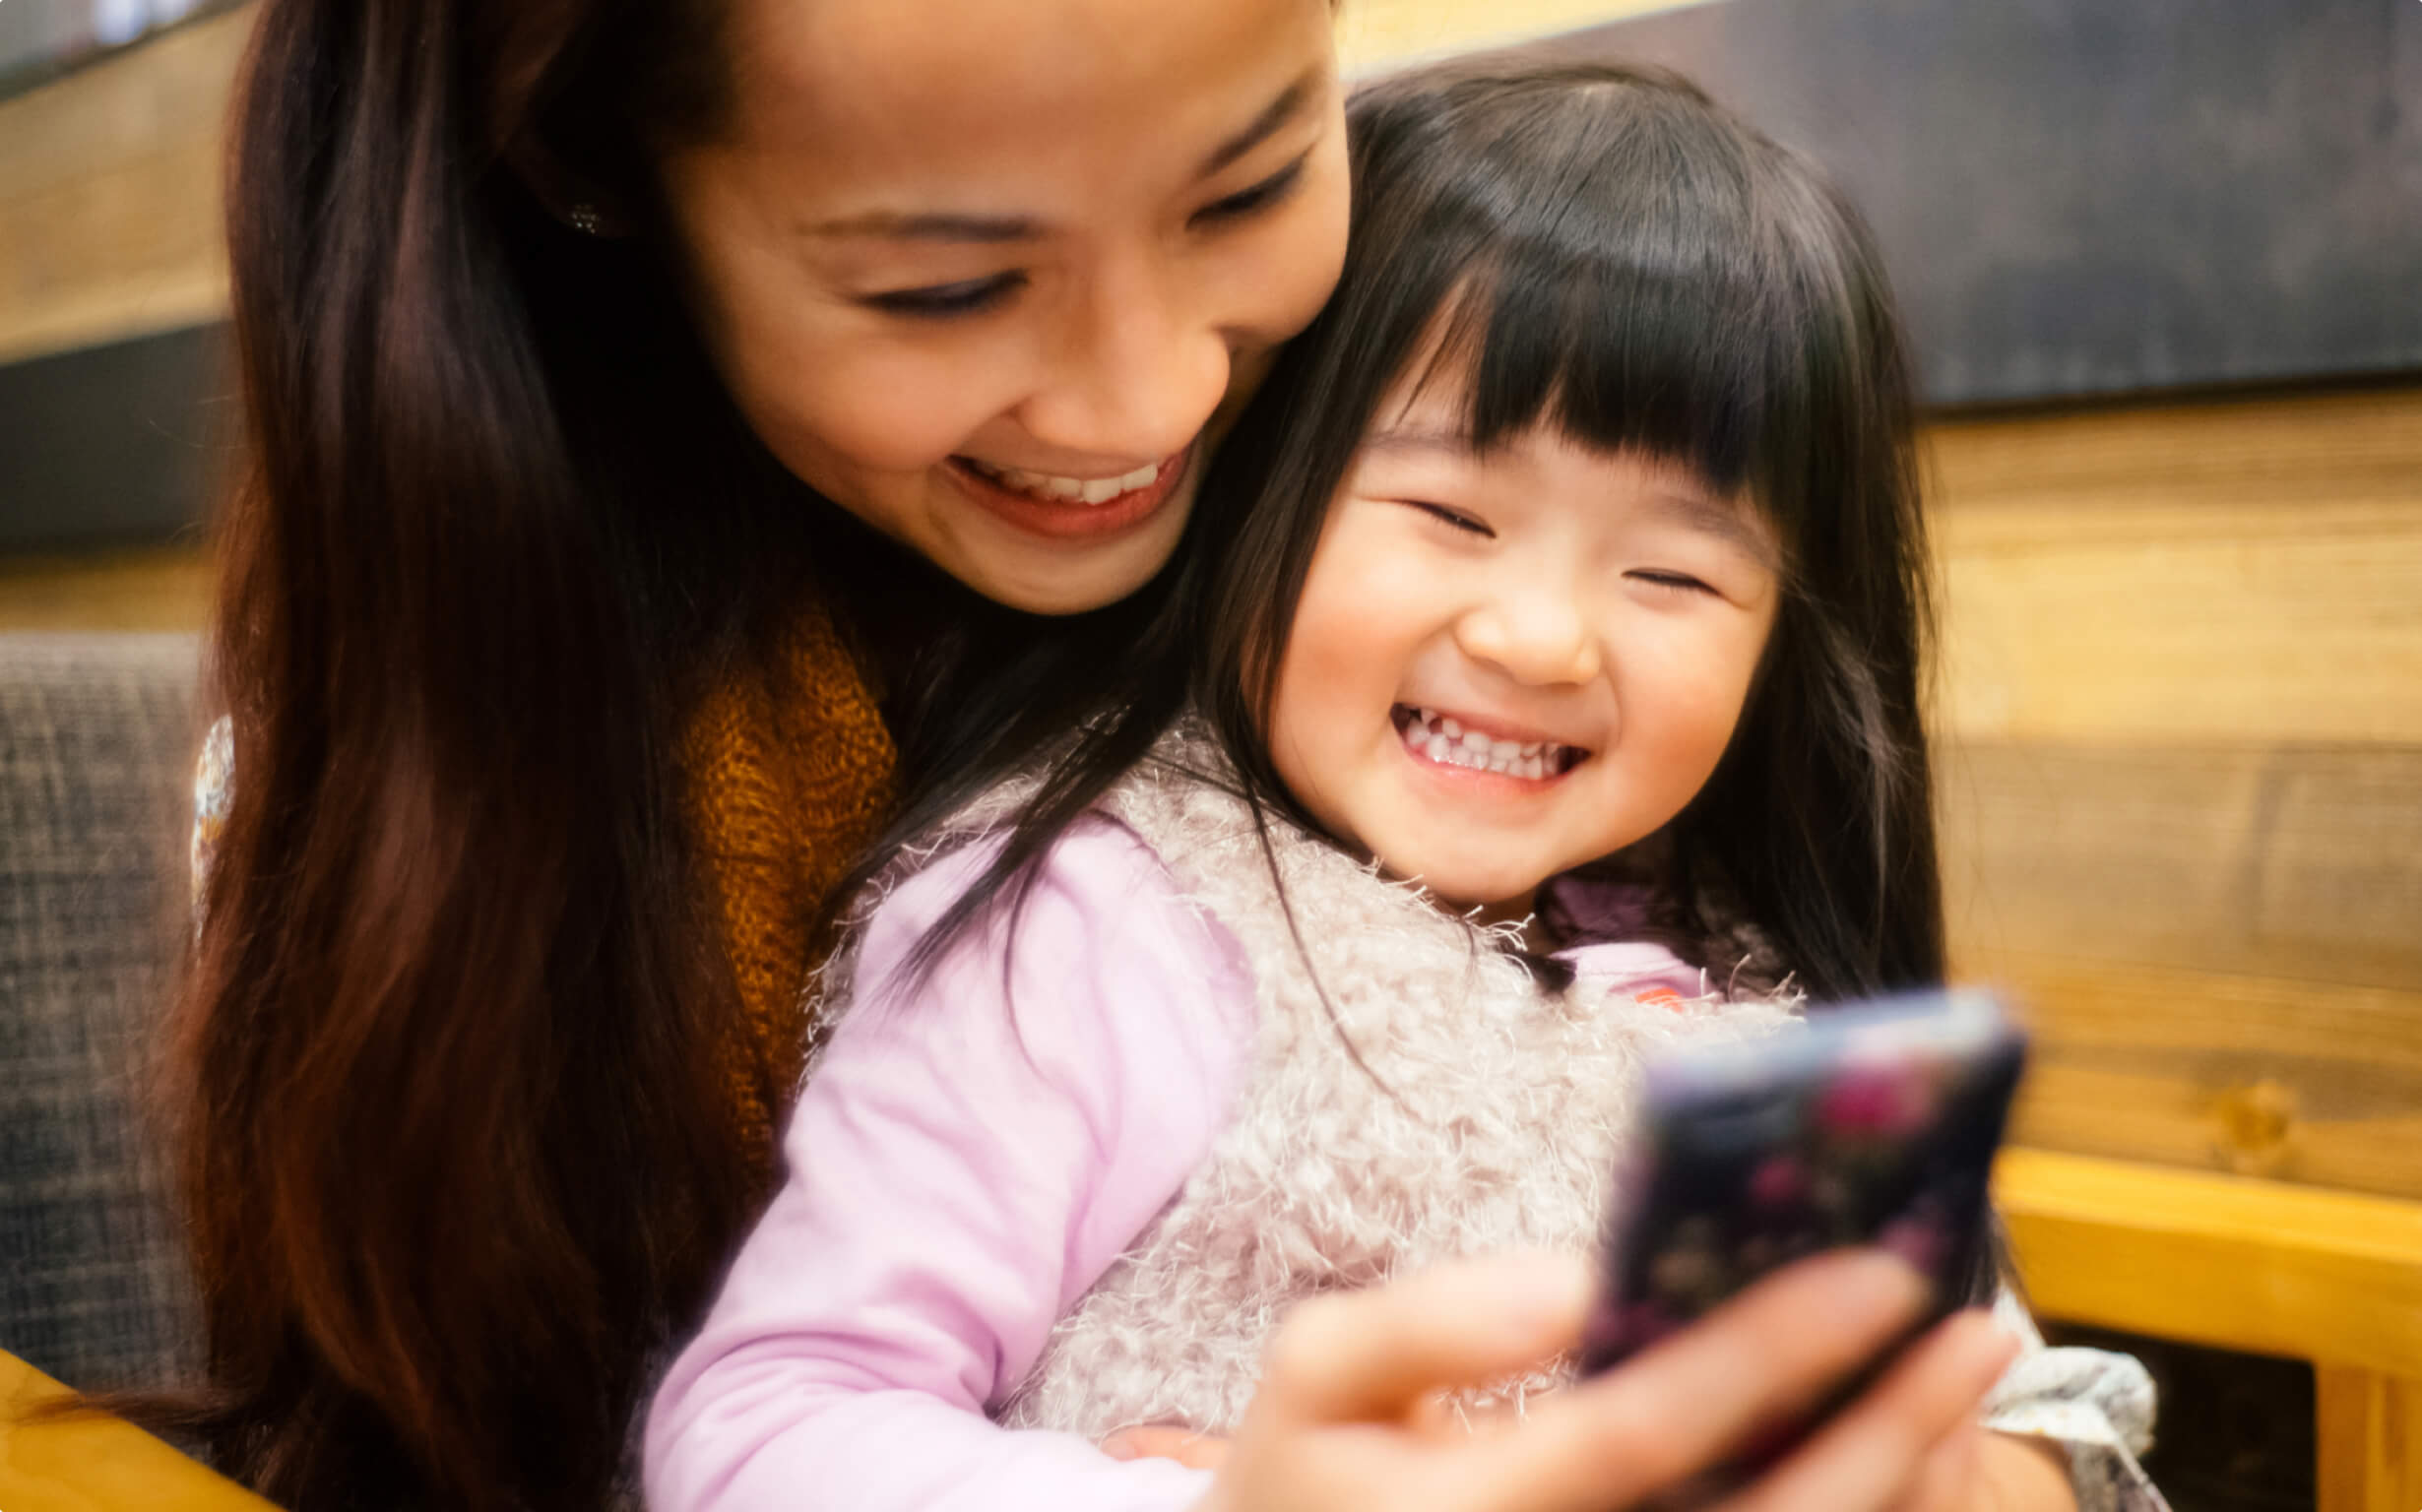 A woman and her small daughter smile while looking at a mobile phone.